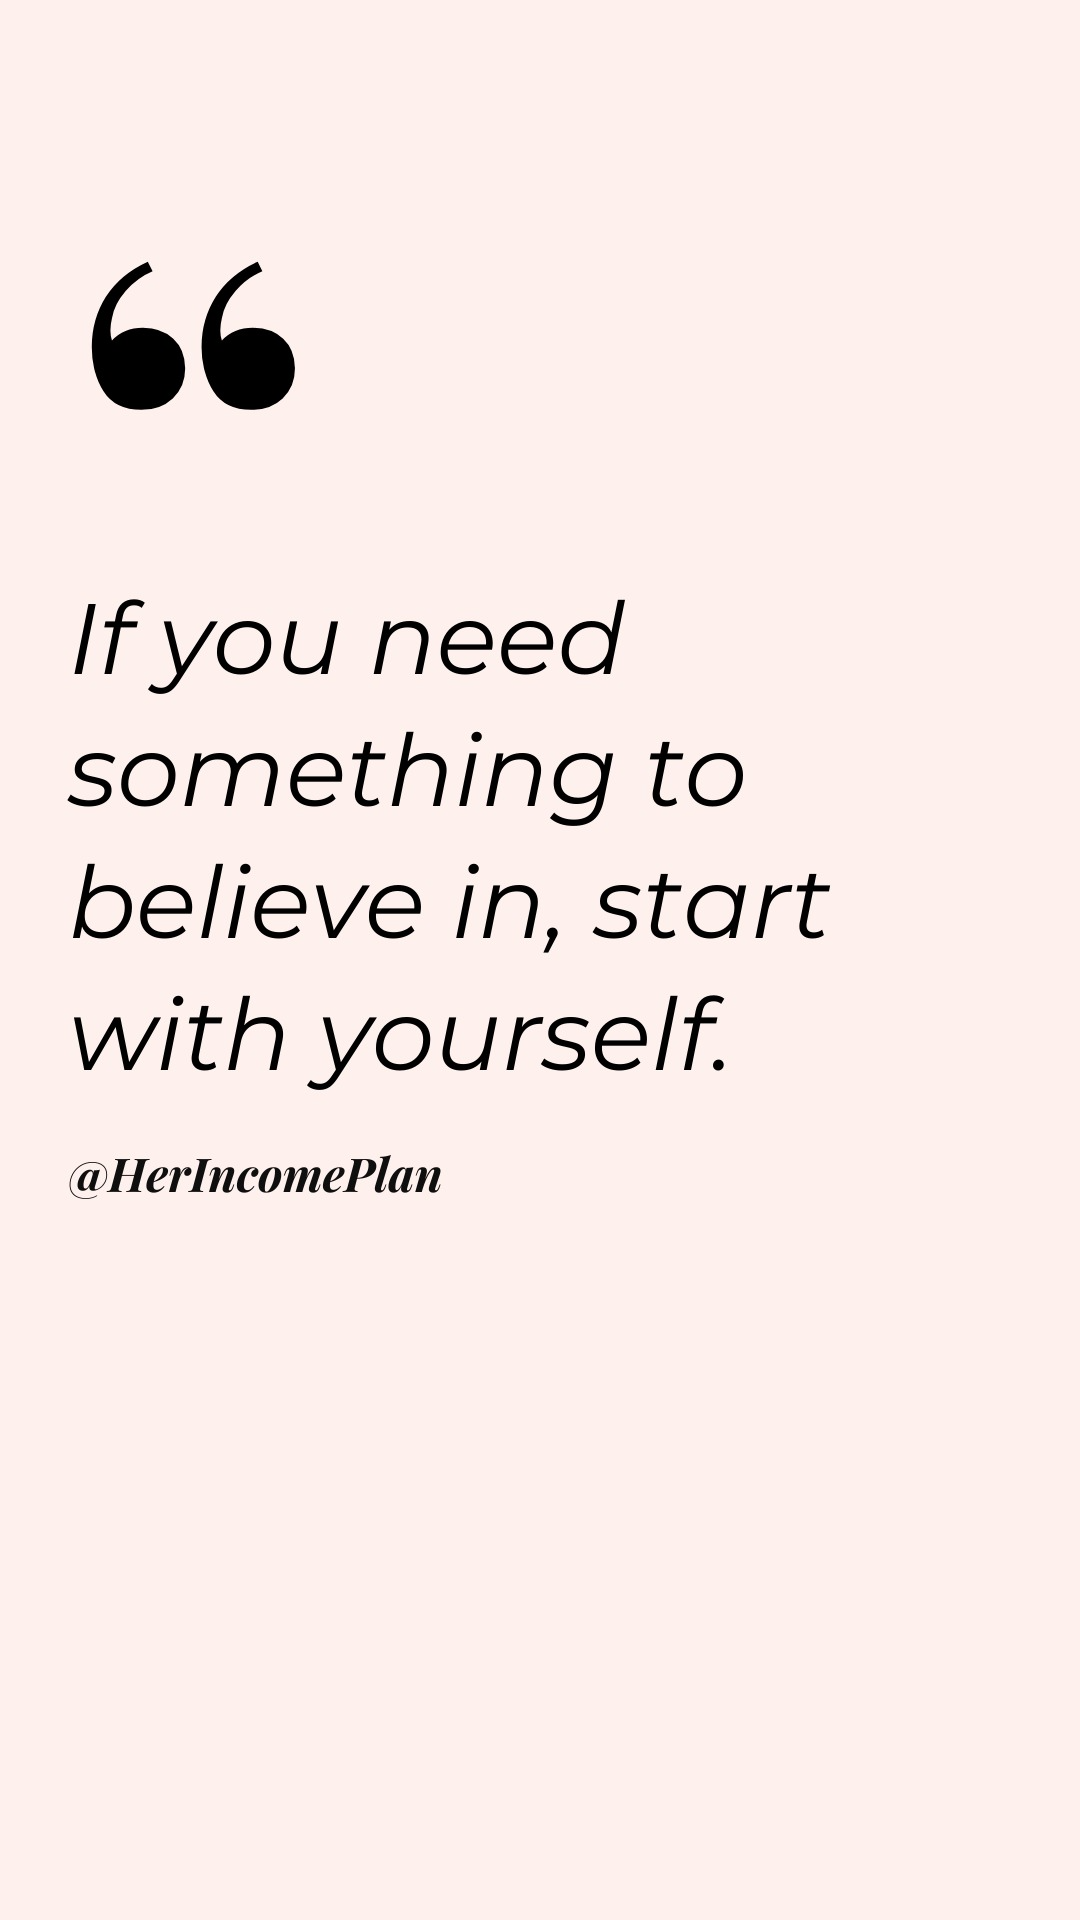 Strong Women Quotes | Inspirational Quotes For Female Entrepreneurs - Her Income Plan